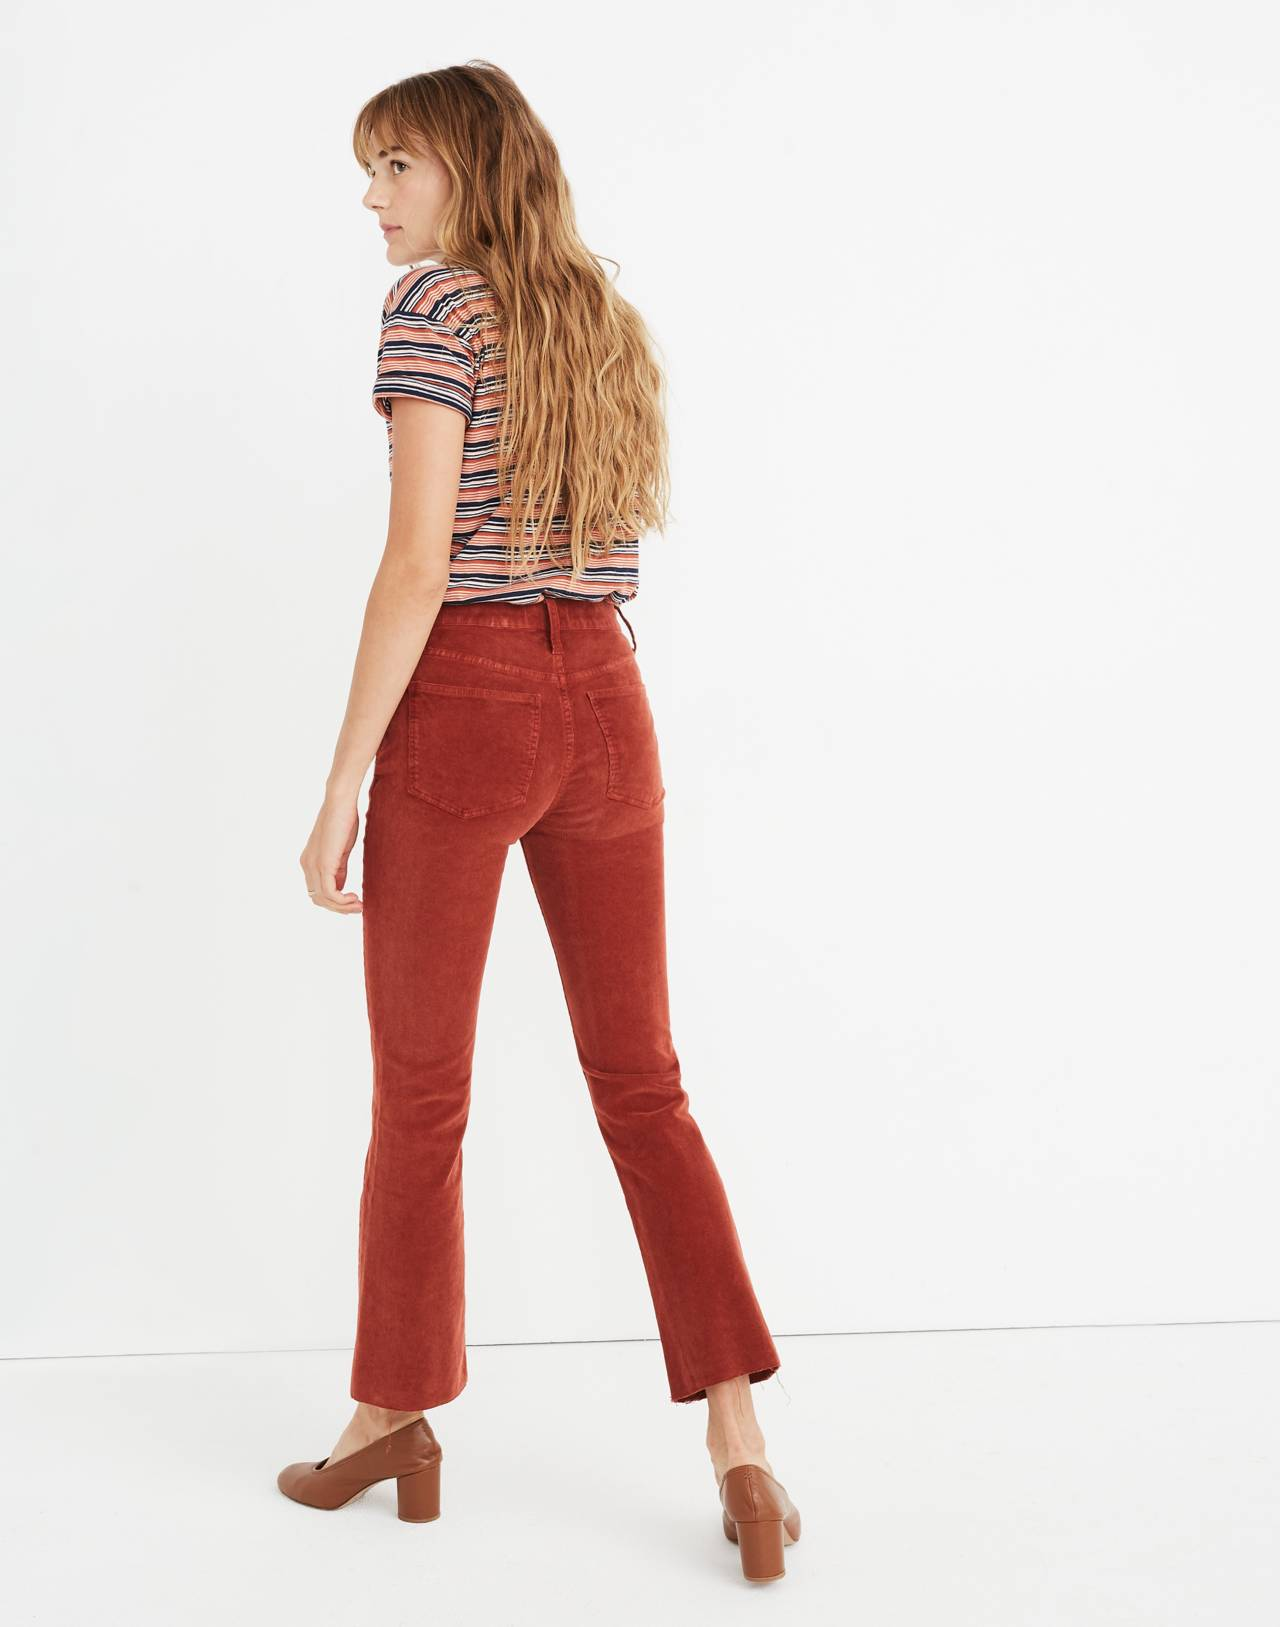 Petite Cali Demi-Boot Jeans: Corduroy Edition in canterbury red image 3